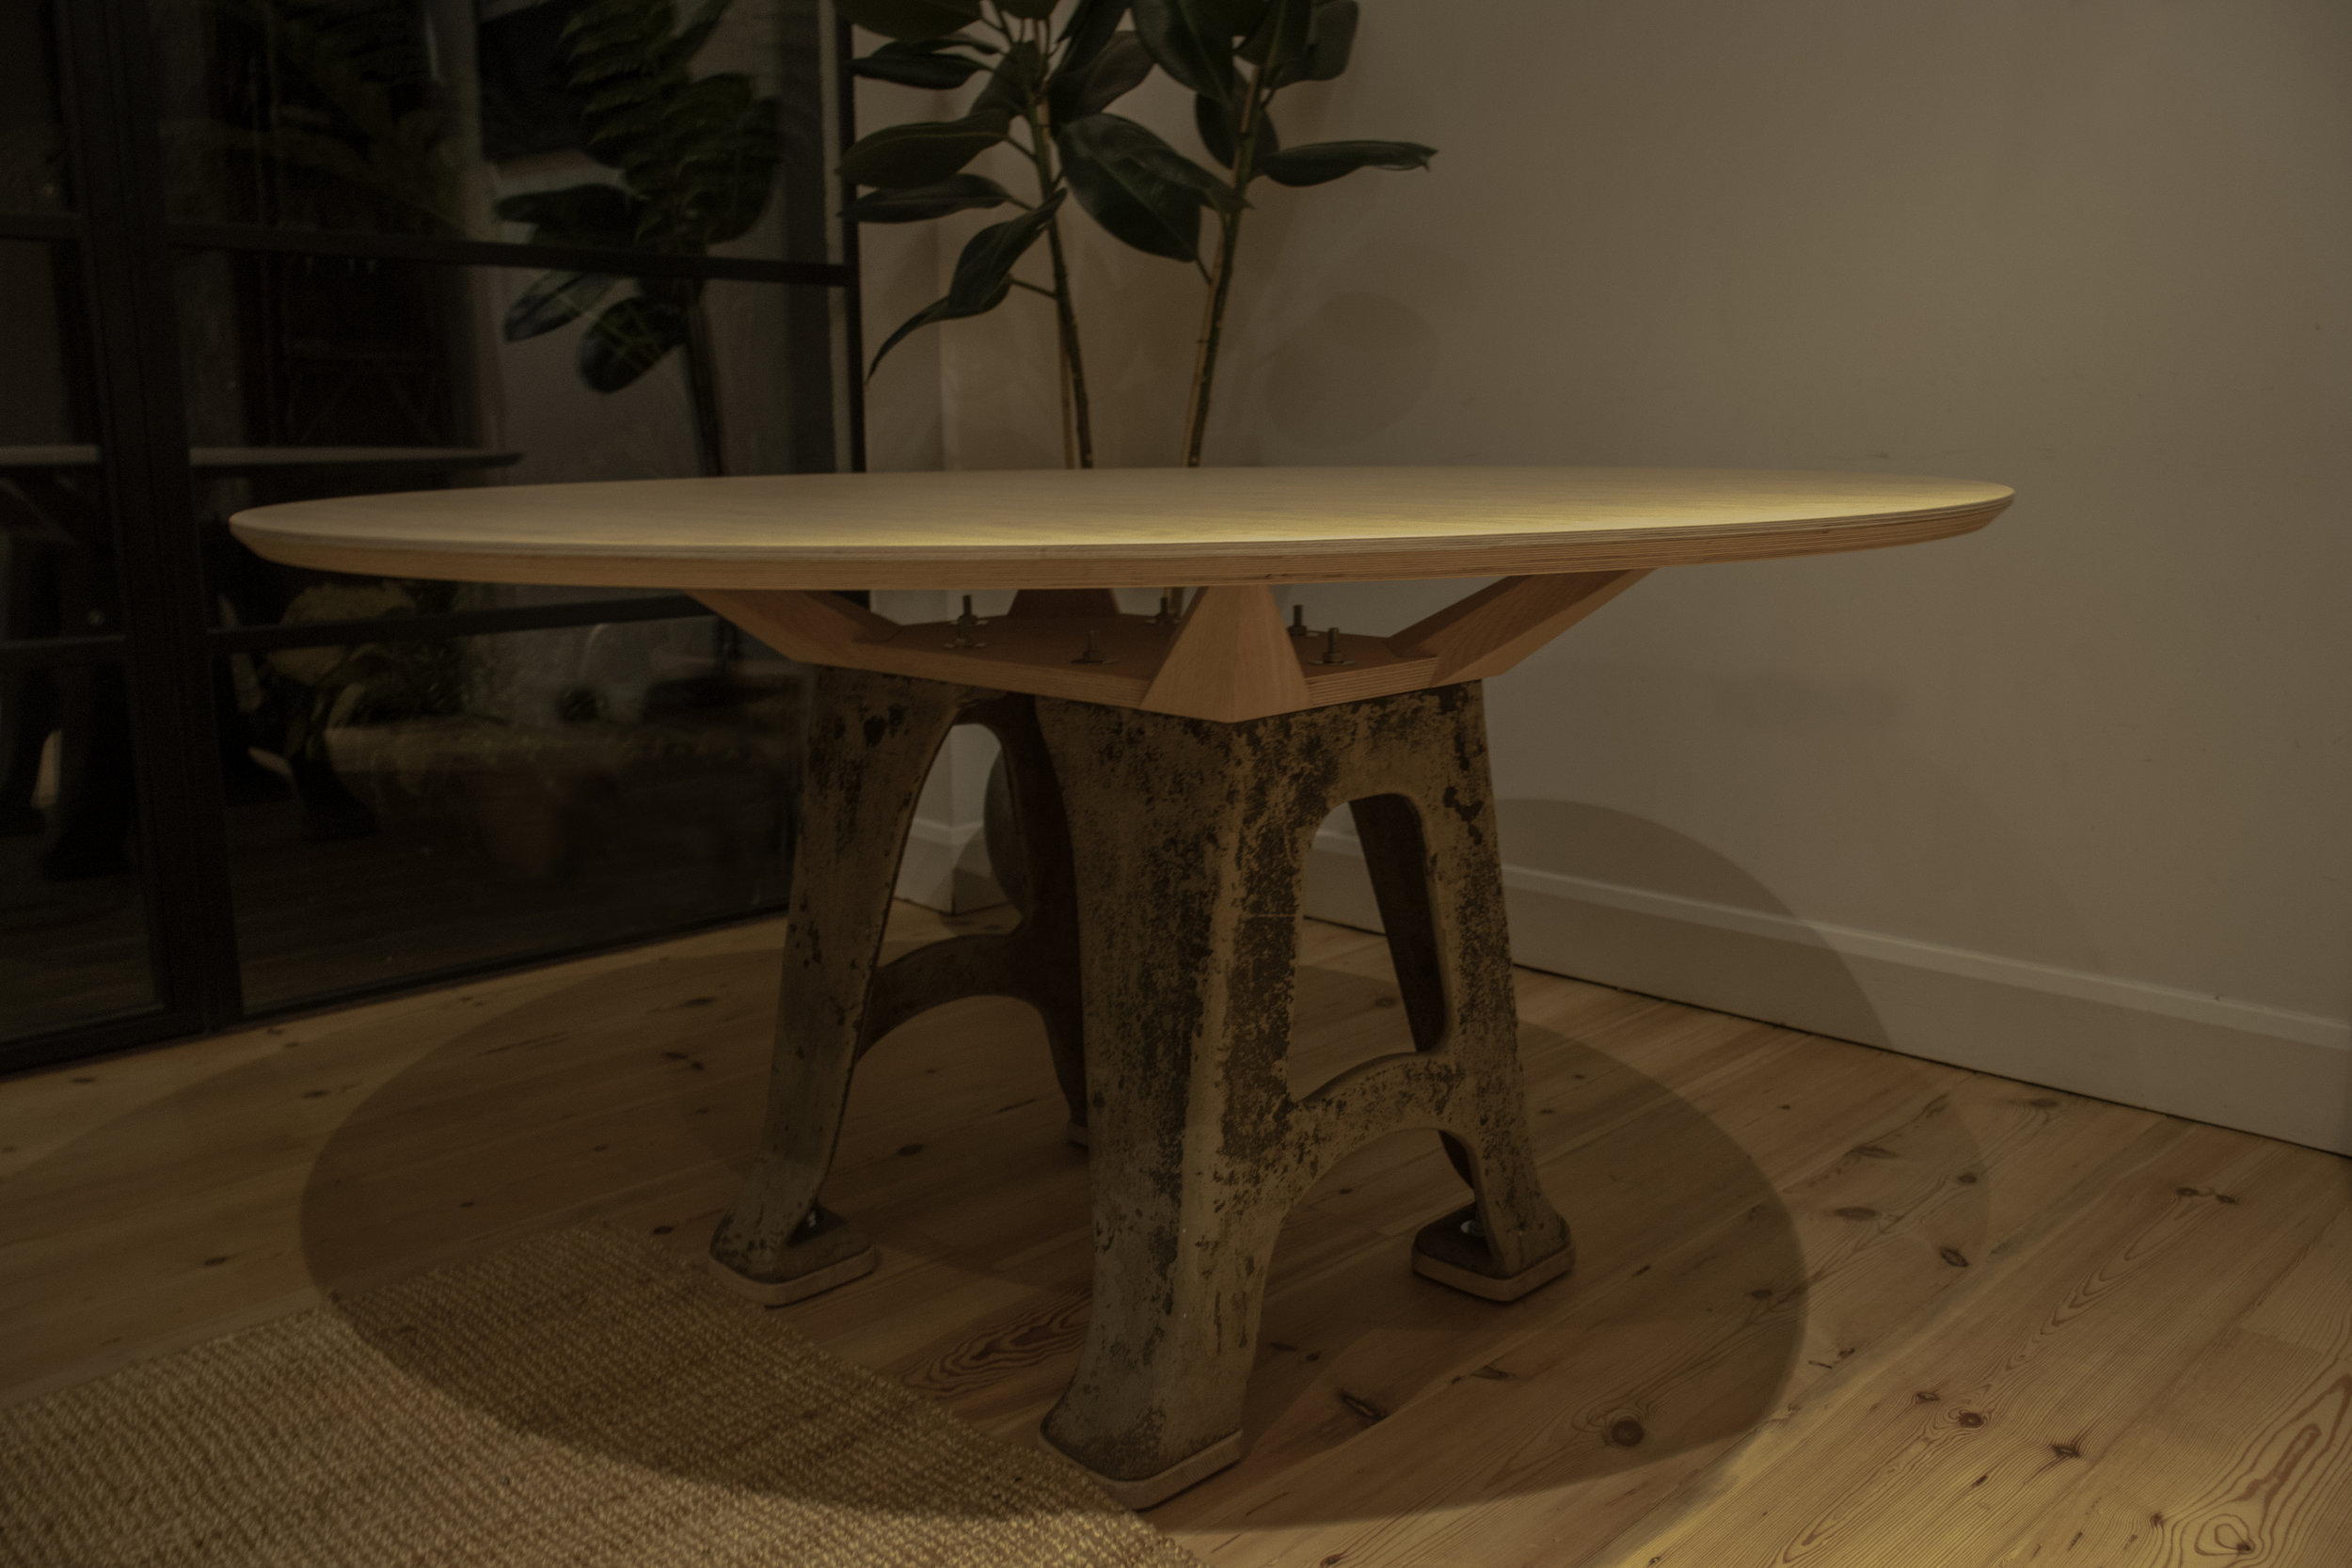 Oak dining table with a reclaimed industrial cast iron base. - This table utilises a reclaimed, industrial cast iron base. The oak, both in solid and veneer, has been bleached to achieve a blonde shade. The core of the top is birch ply.